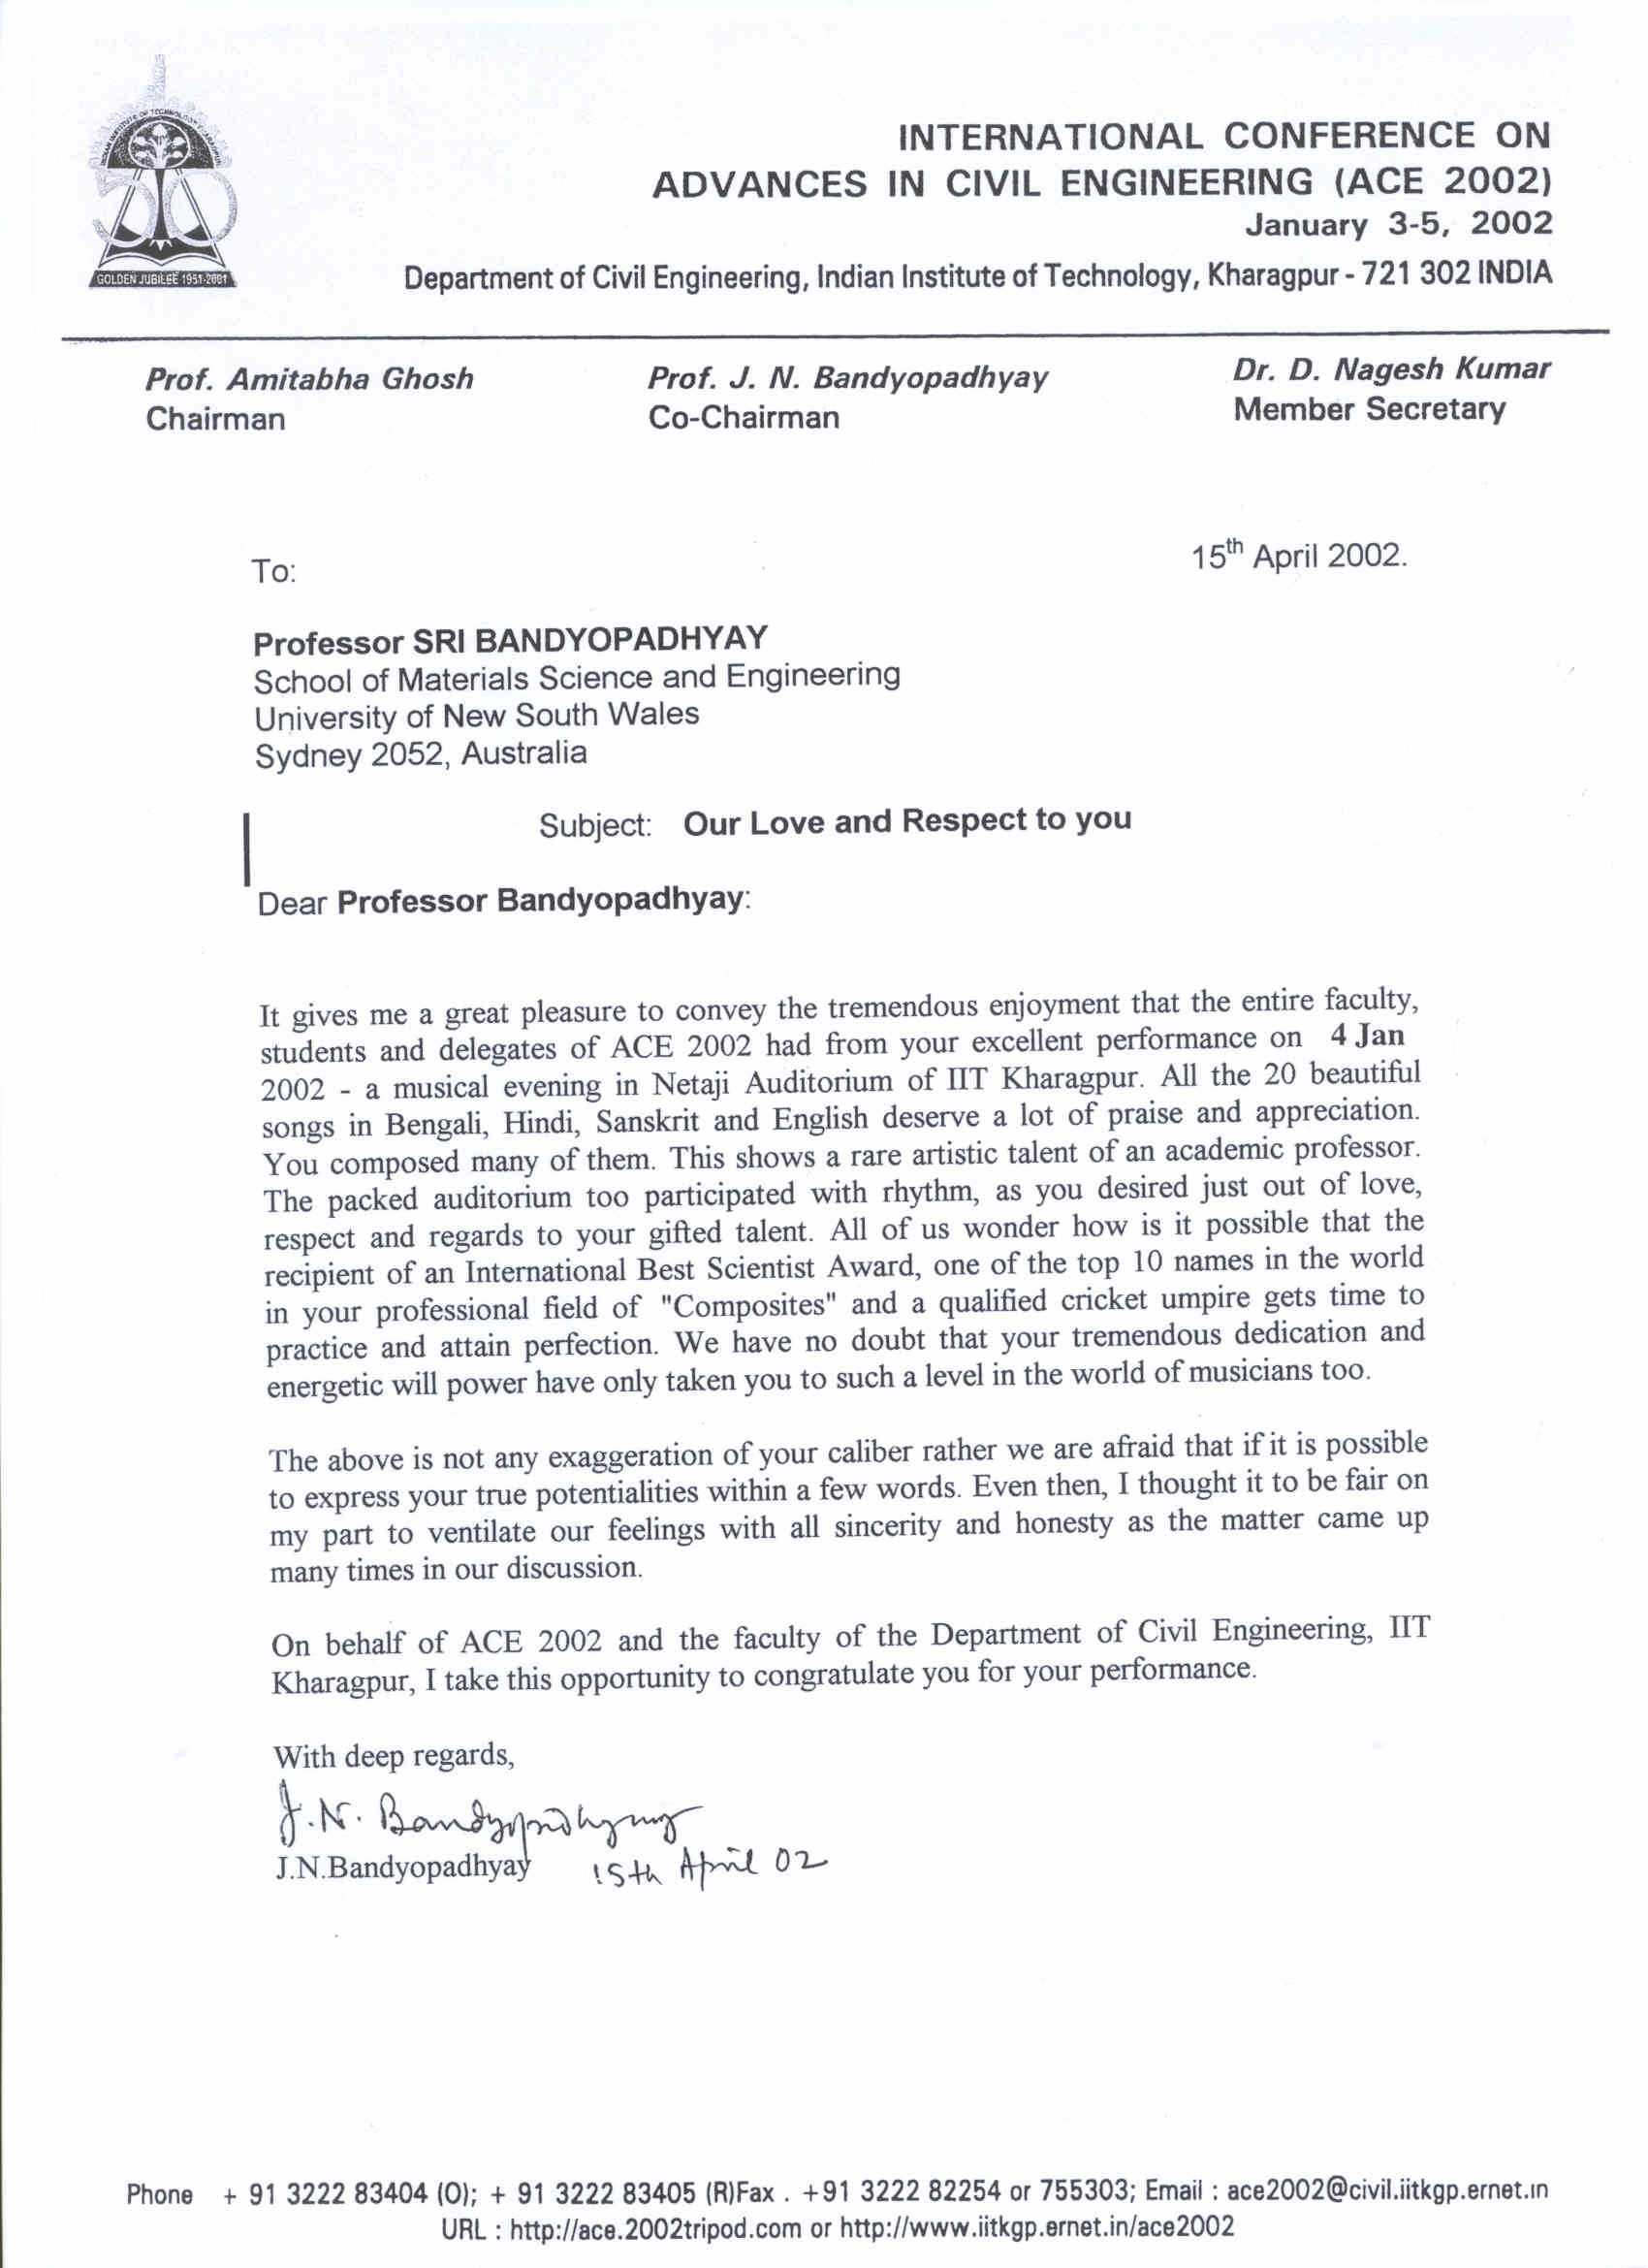 Letter Of Admiration IITKGP Function 02